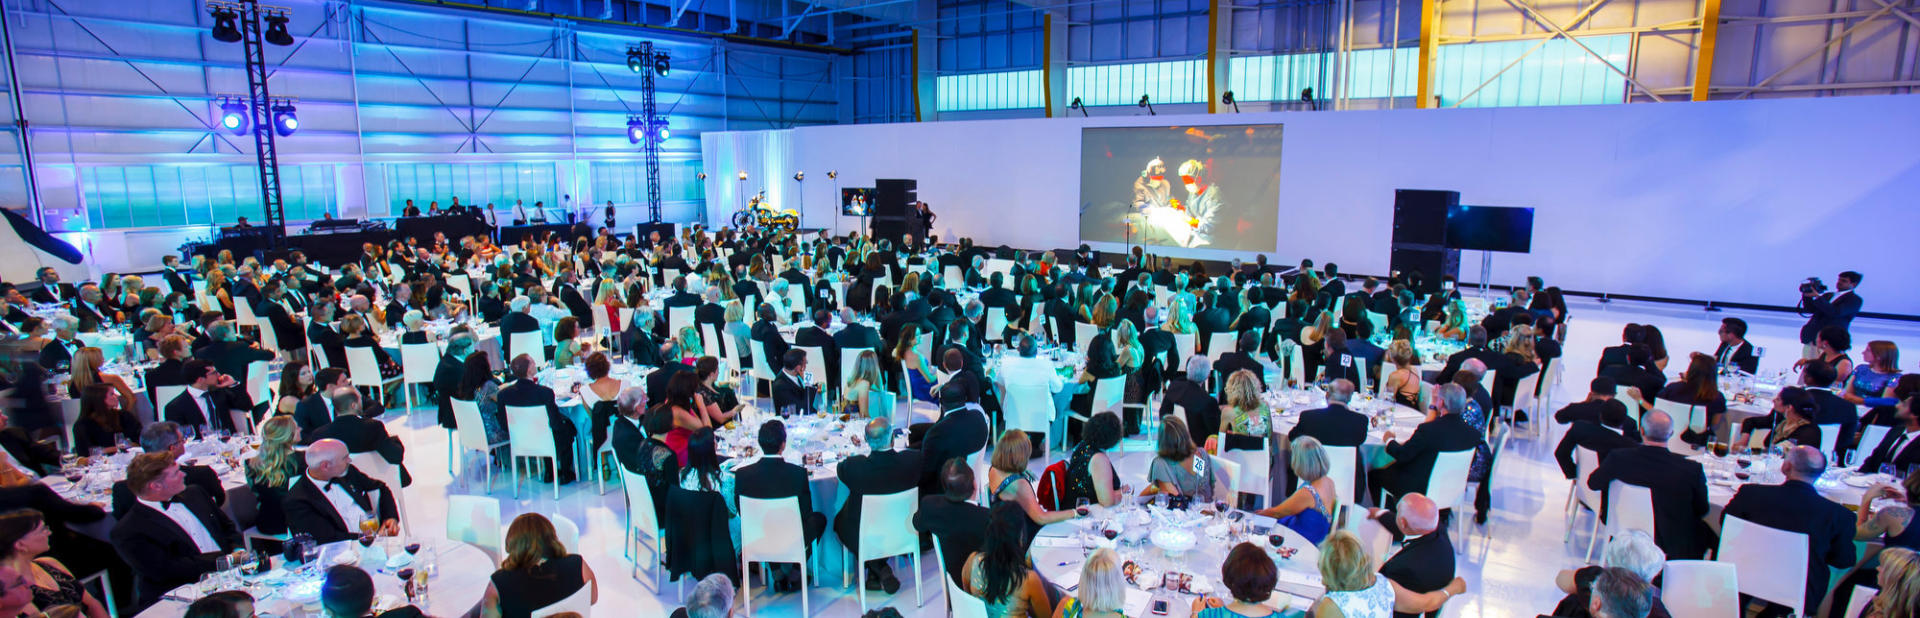 Orbis international gala 2018.